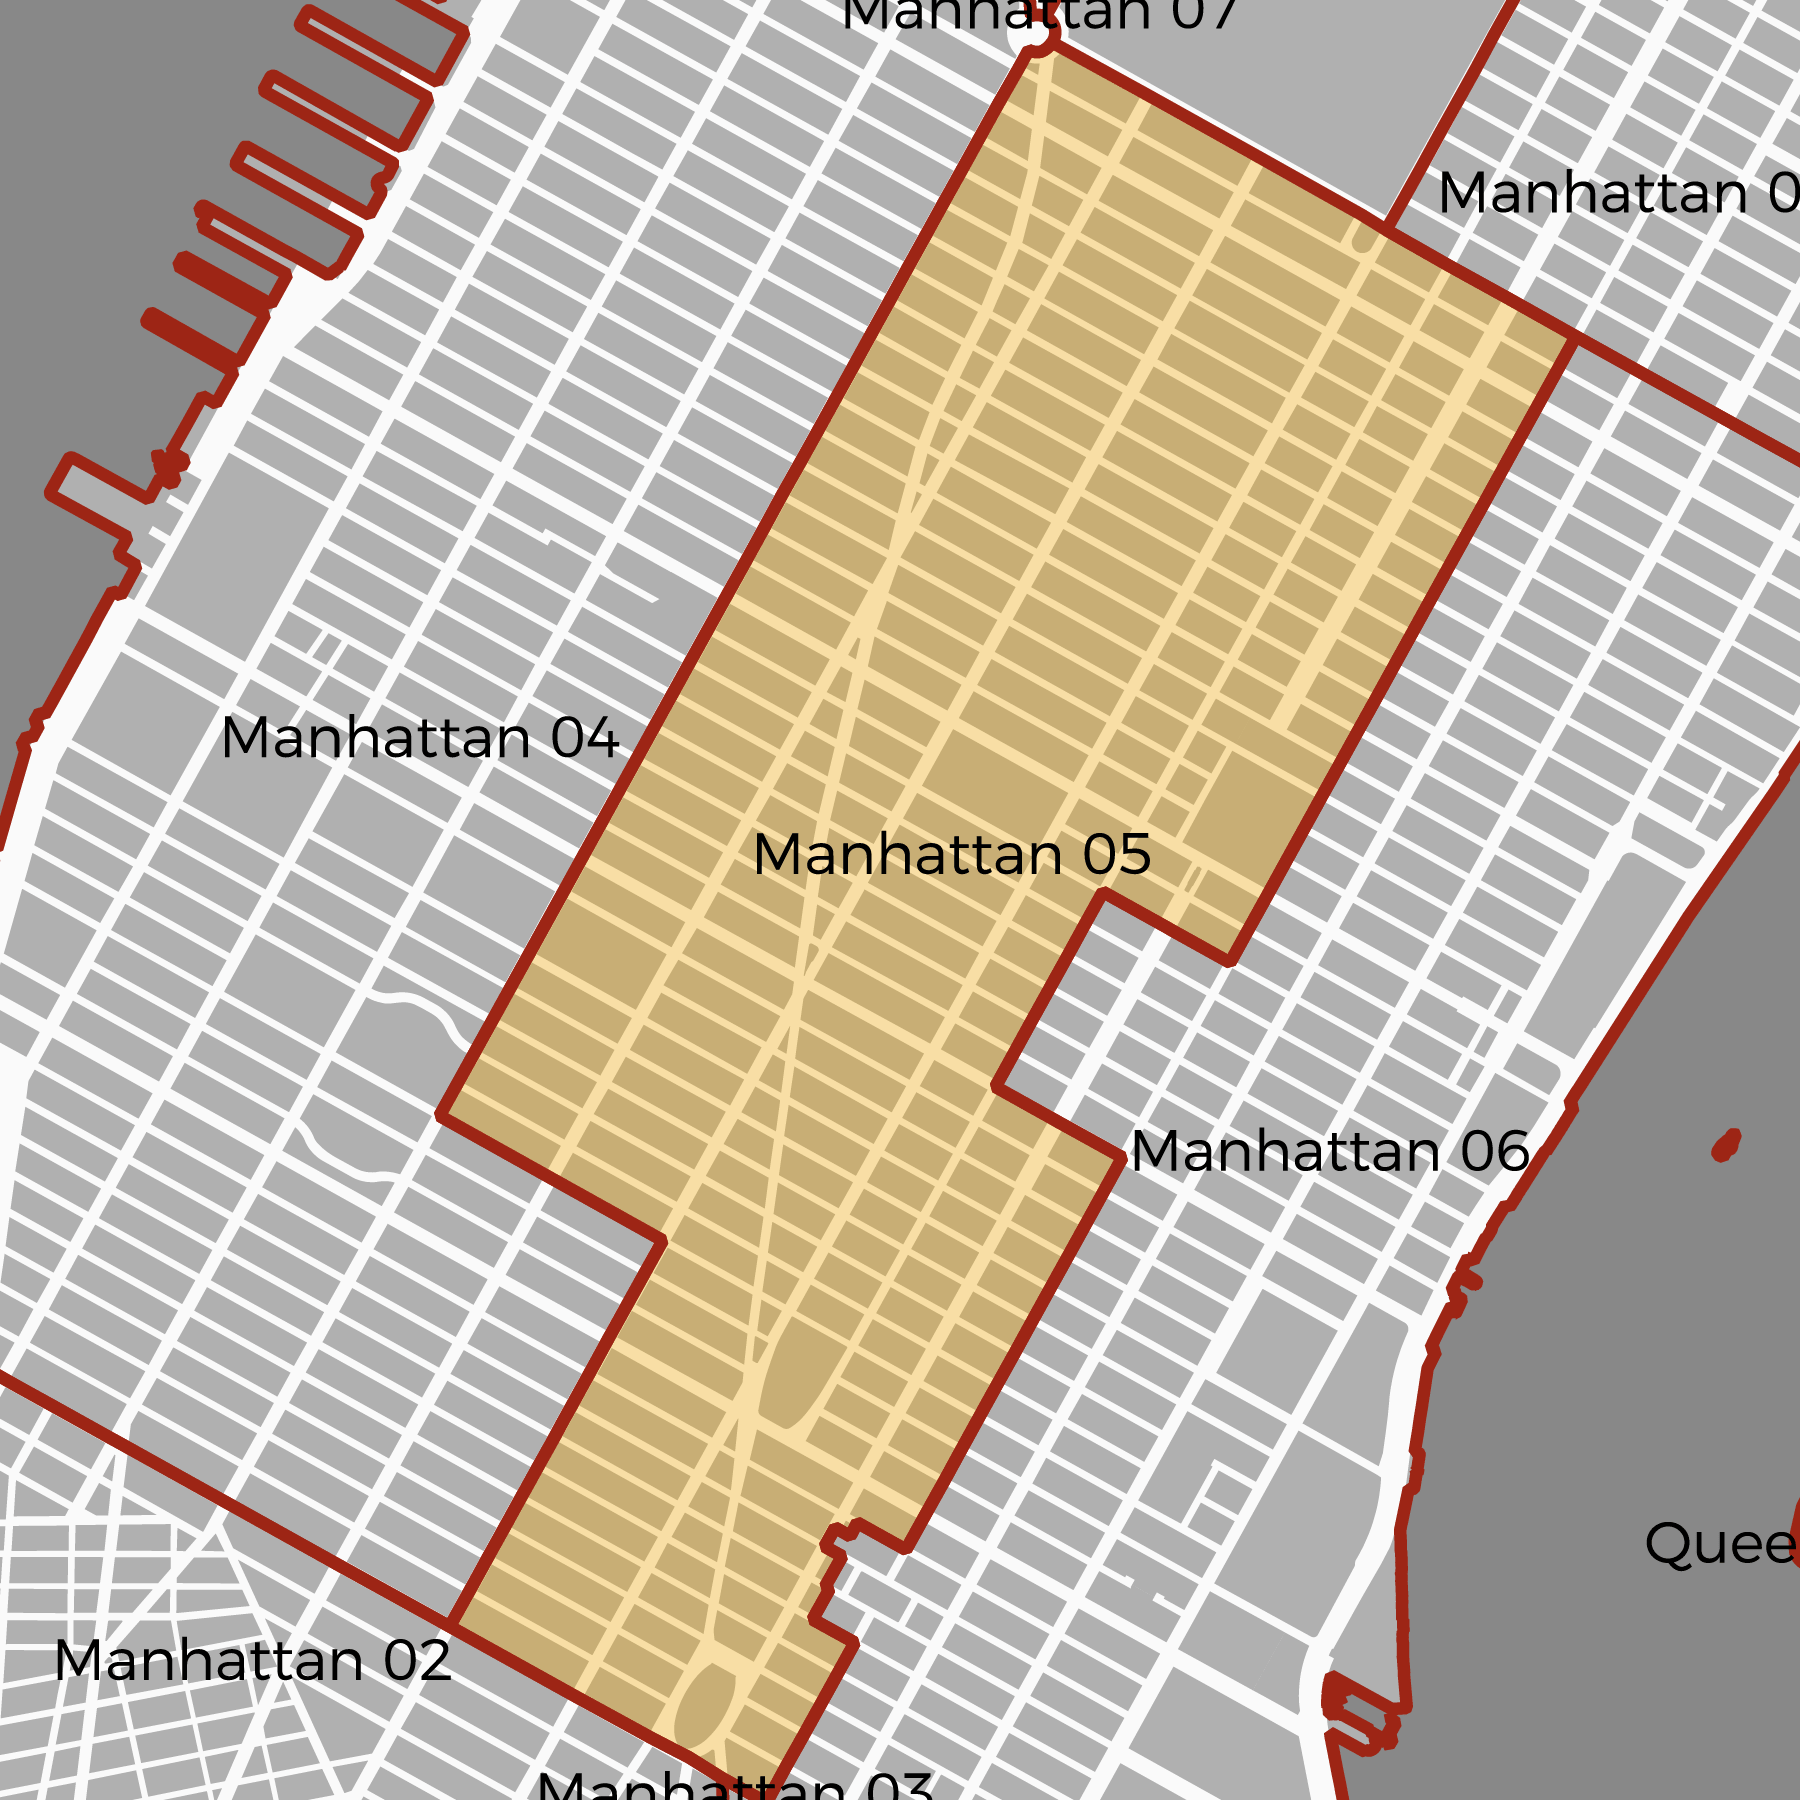 Manhattan Community Board 5